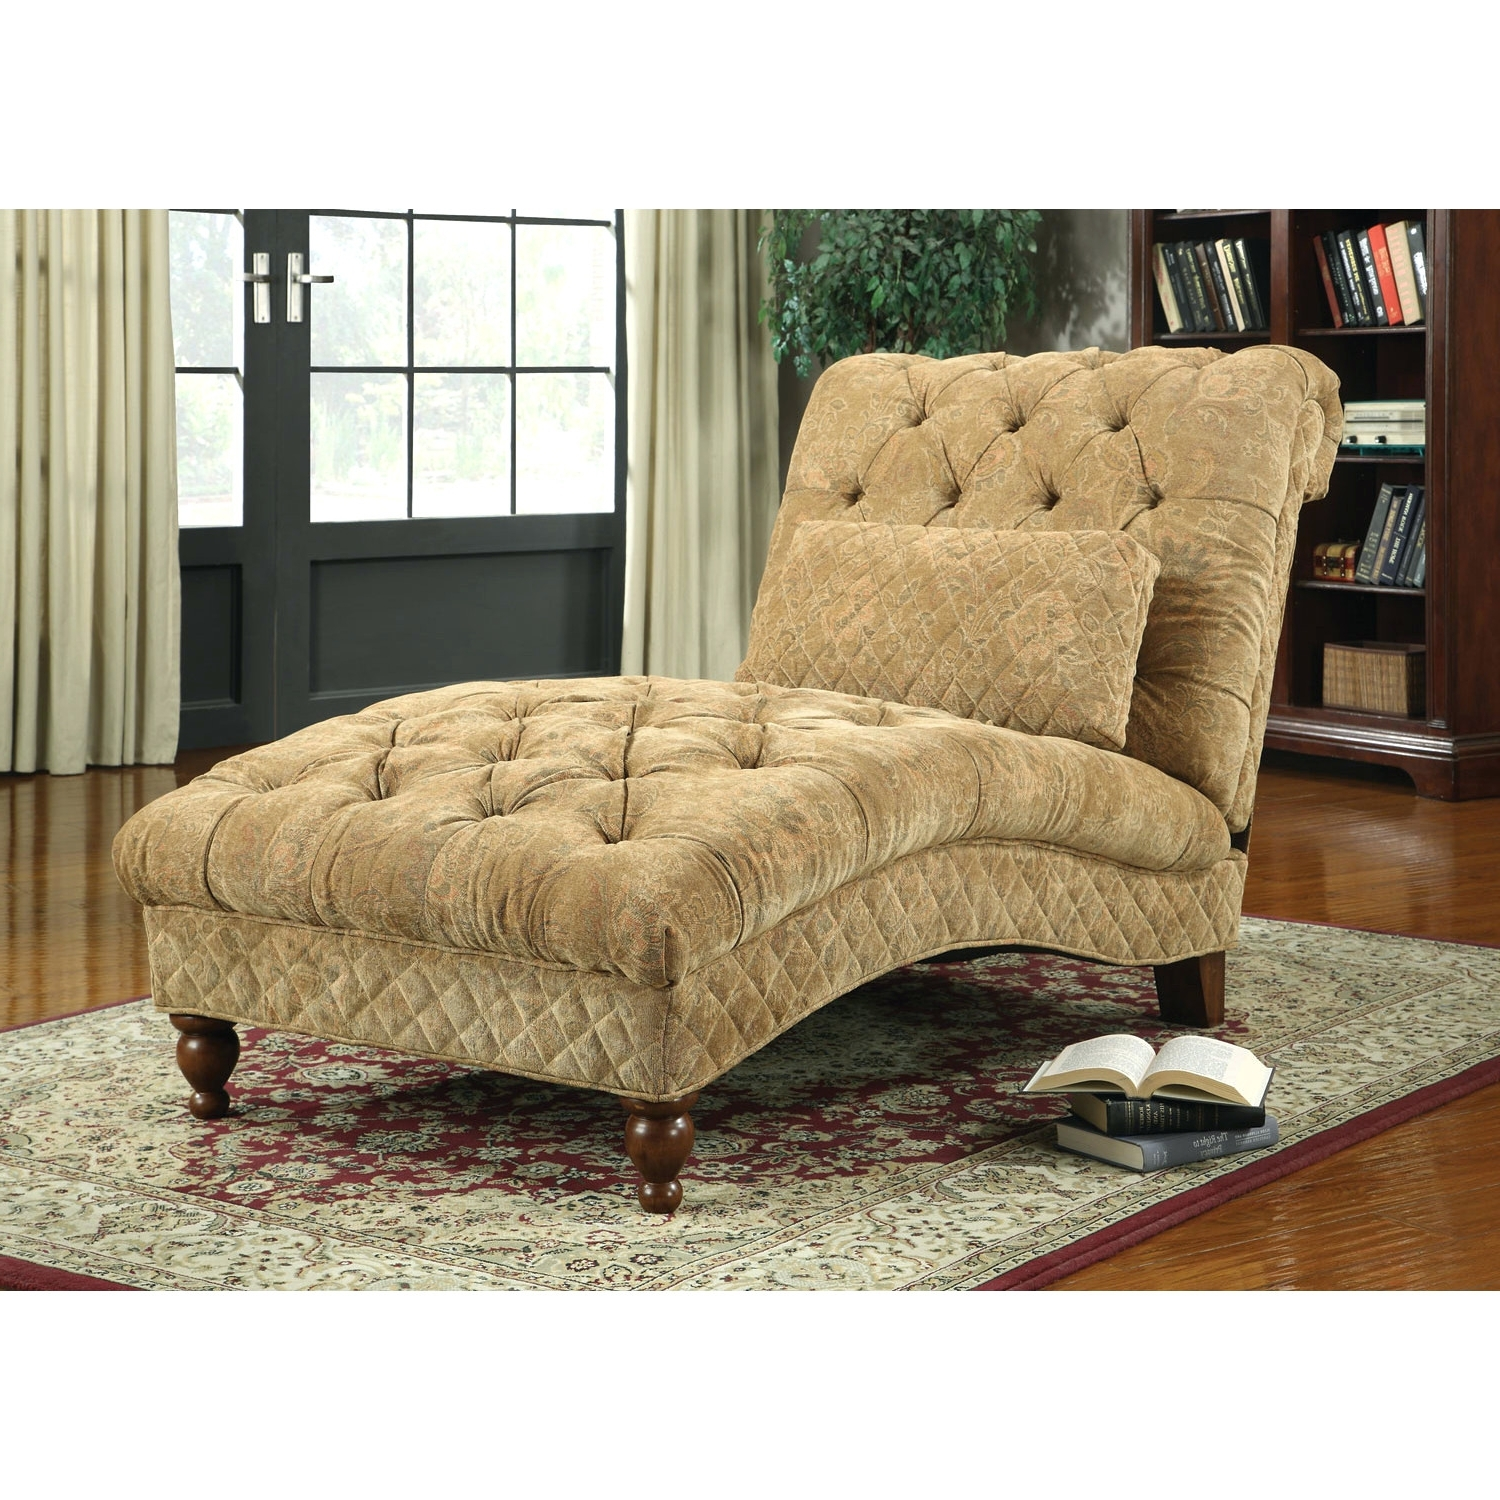 Best and Newest Ideas Collection Two Person Chaise About 2 Person Chaise Lounge throughout 2 Person Indoor Chaise Lounges